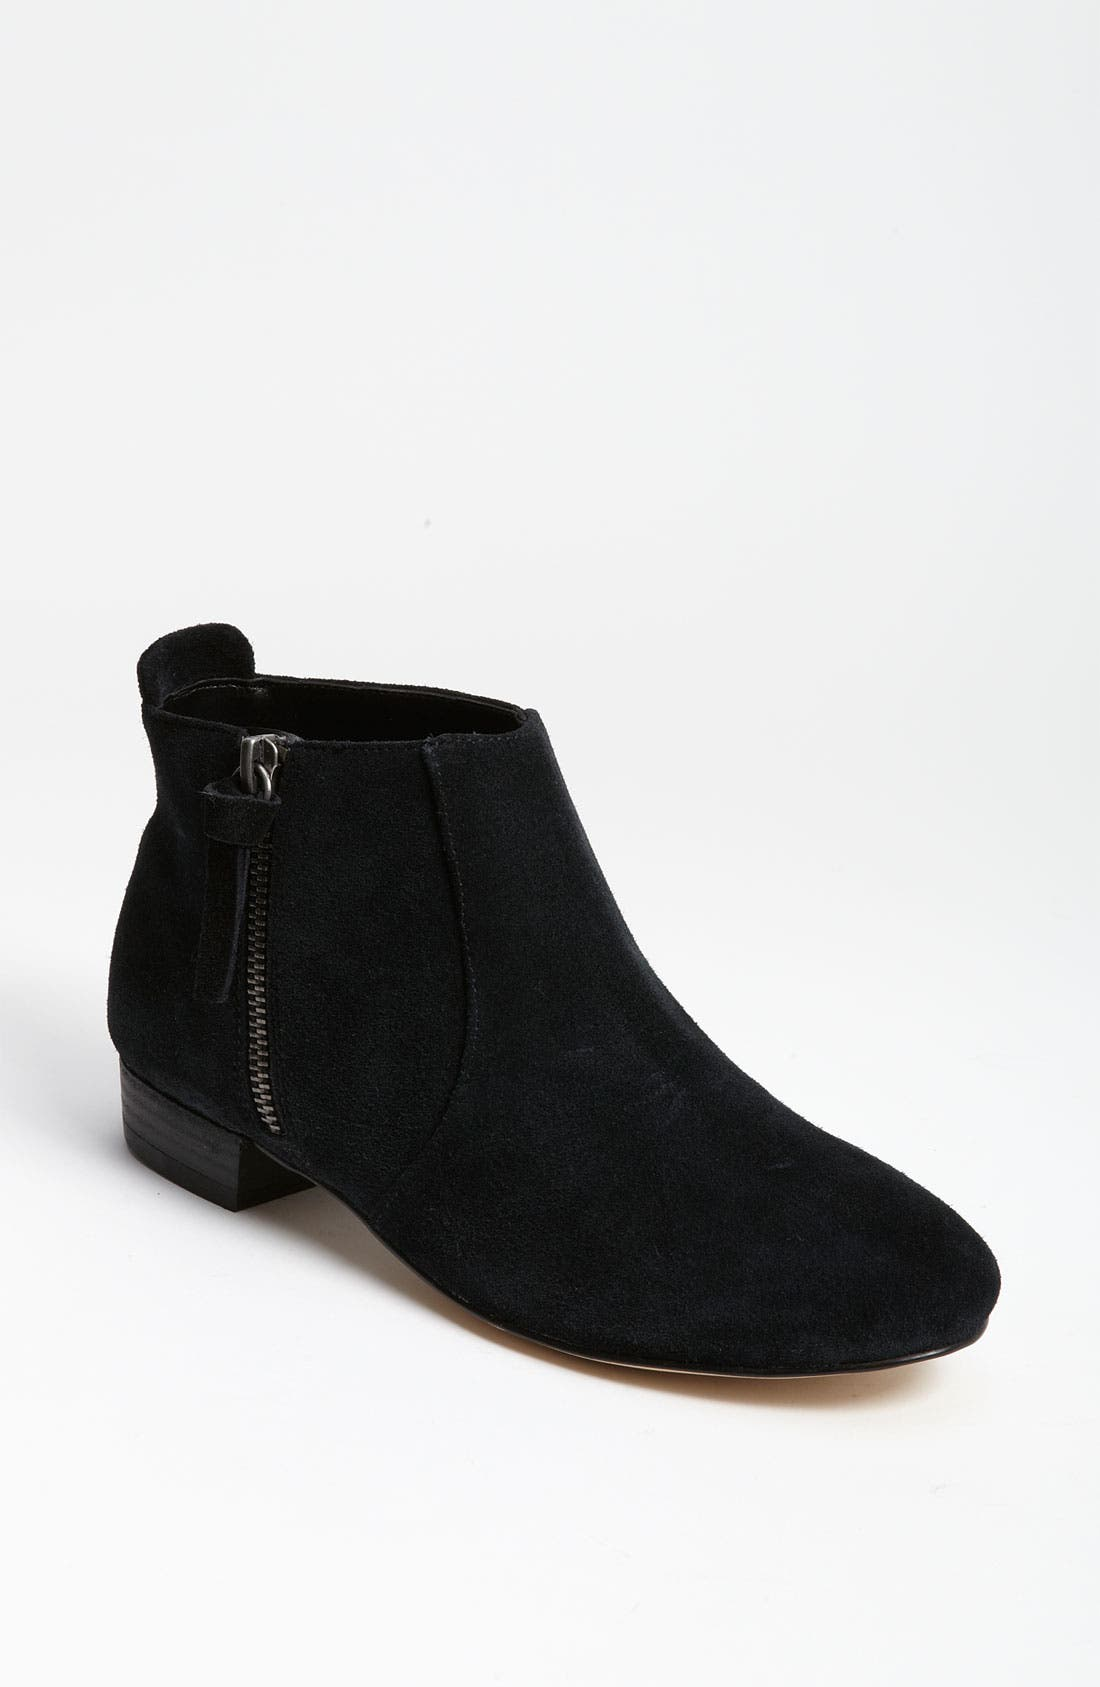 Alternate Image 1 Selected - DV by Dolce Vita 'Folly' Bootie